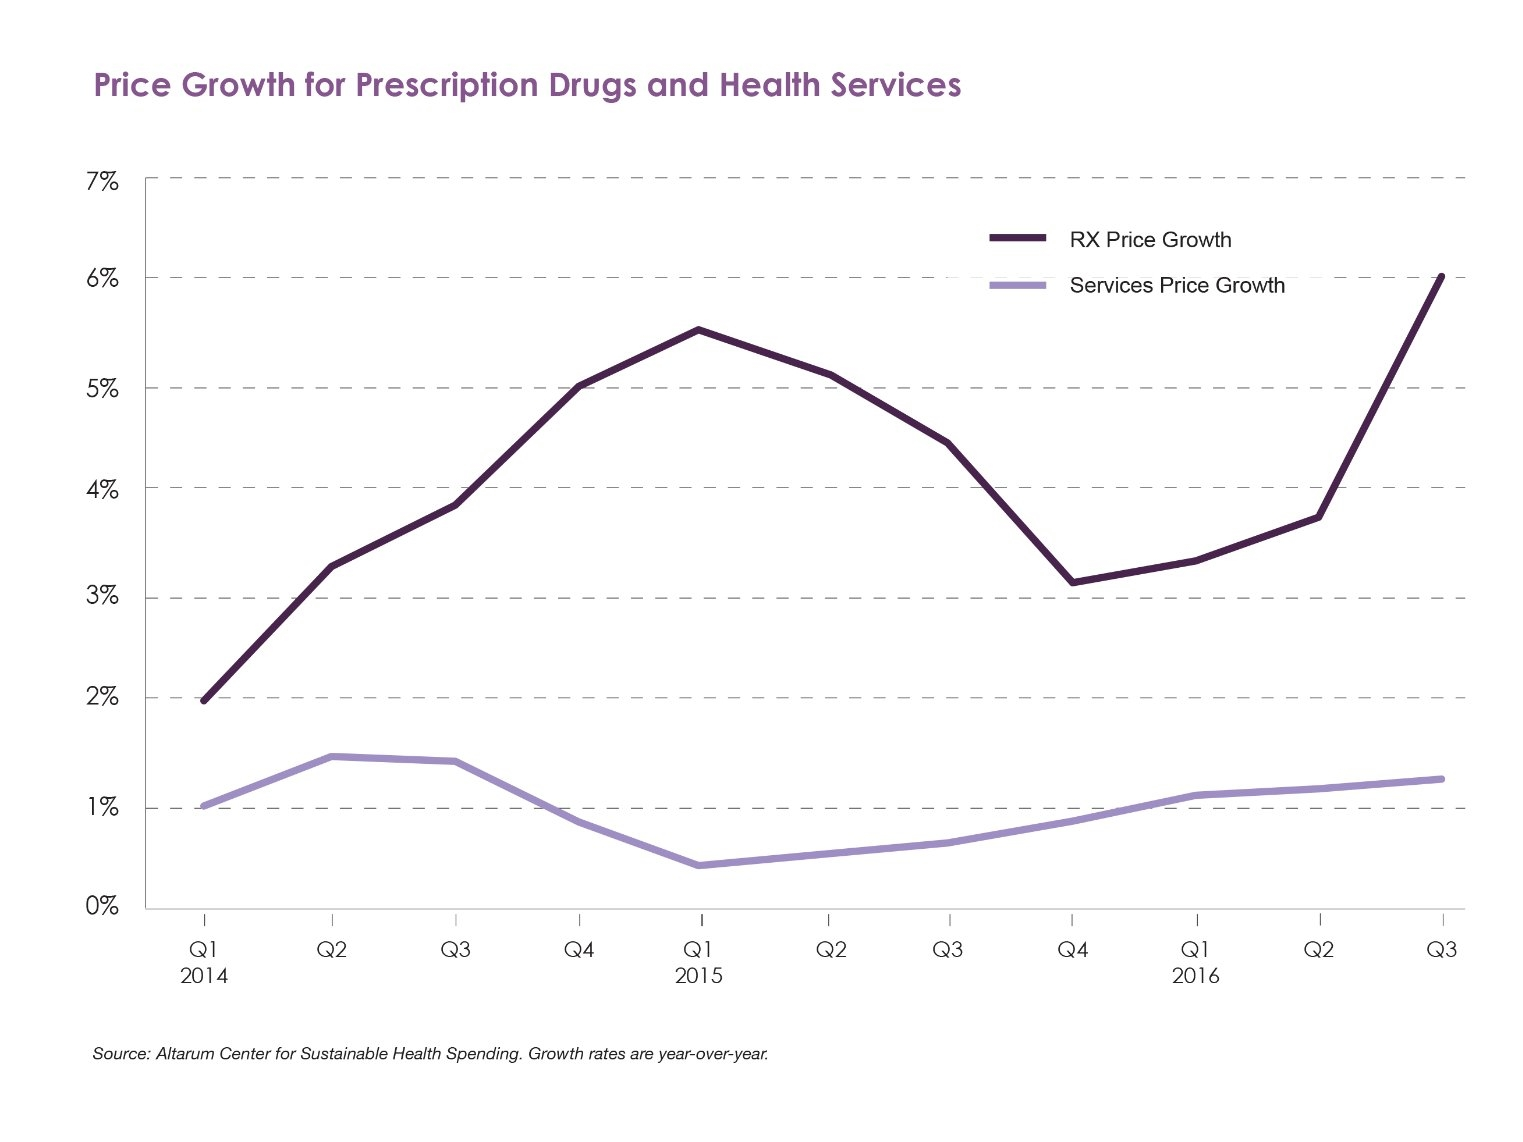 Graph showing price growth for prescription drugs and health services